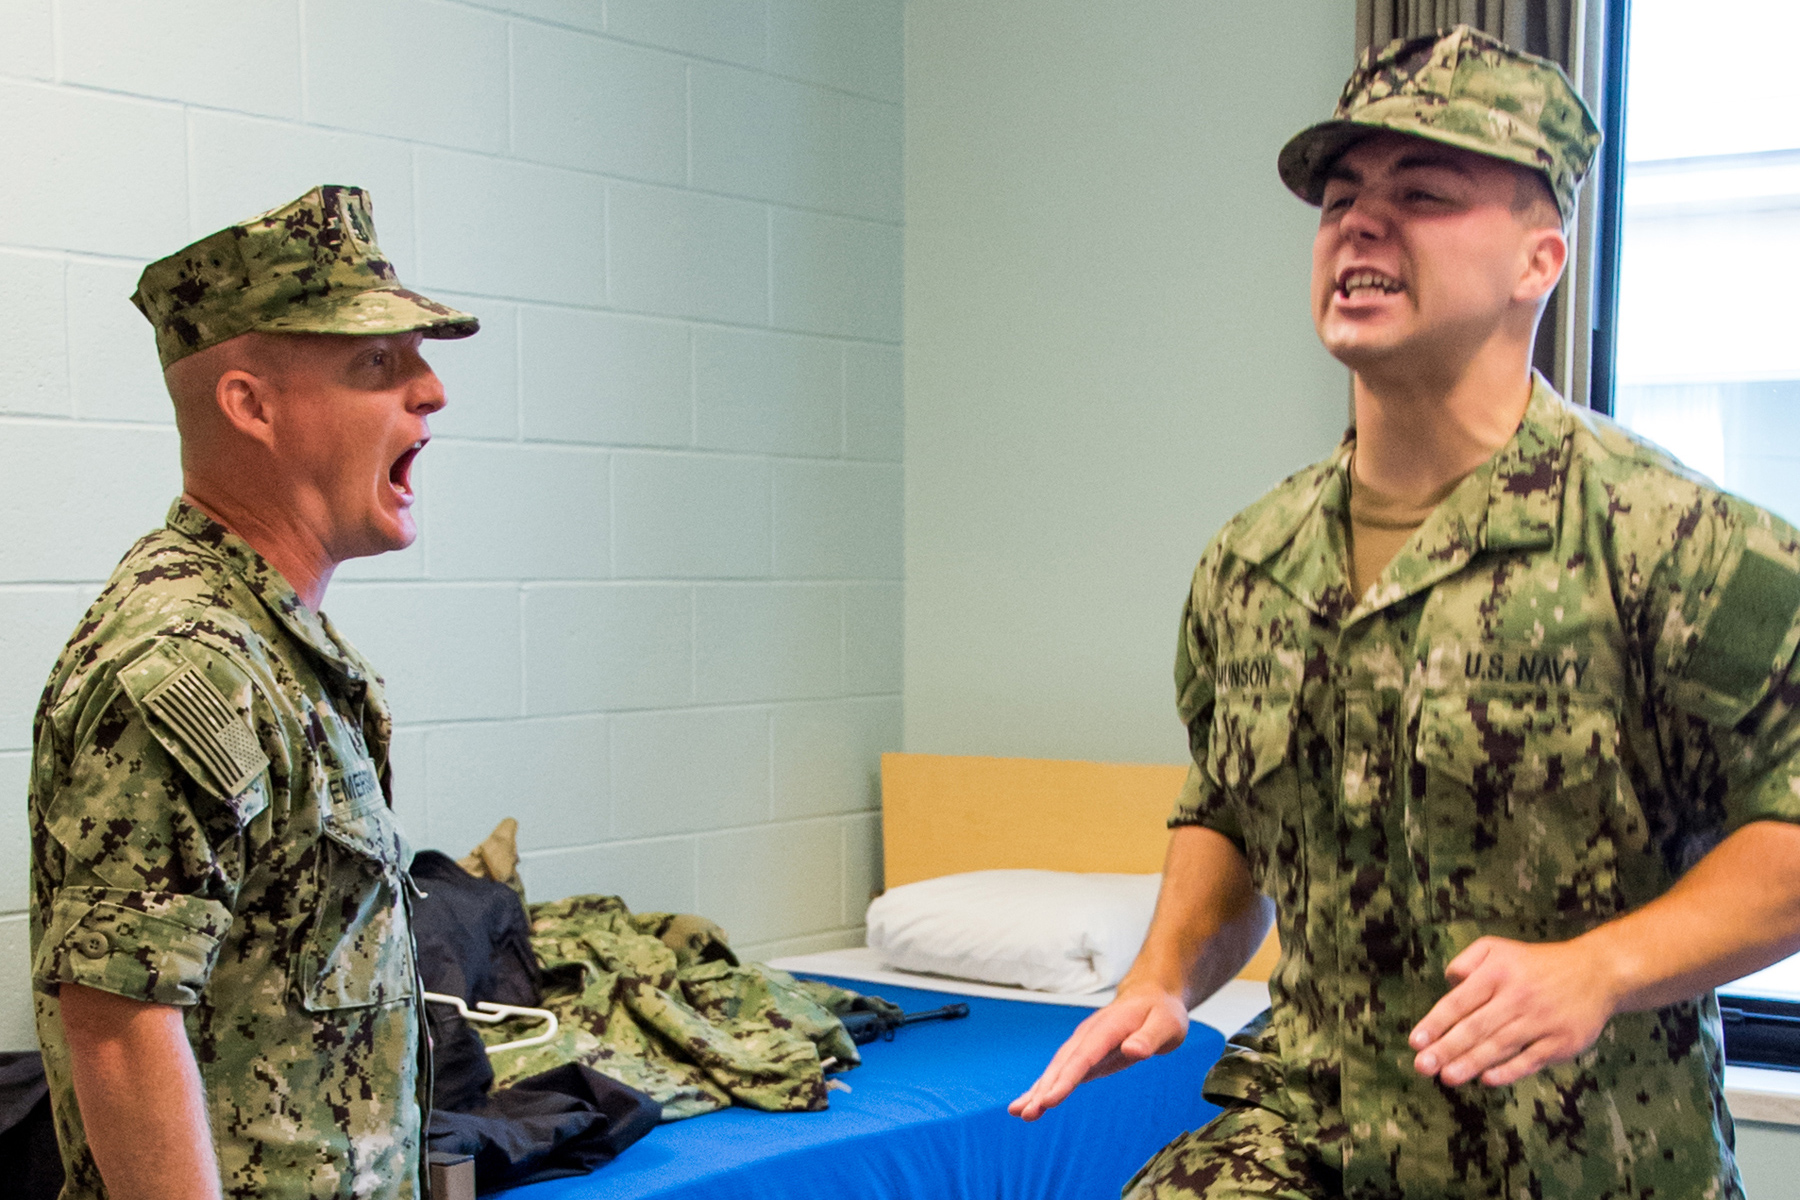 Navy Boot Camp Trainers Must Spend 90 Days Away from Families in Lockdown Measure